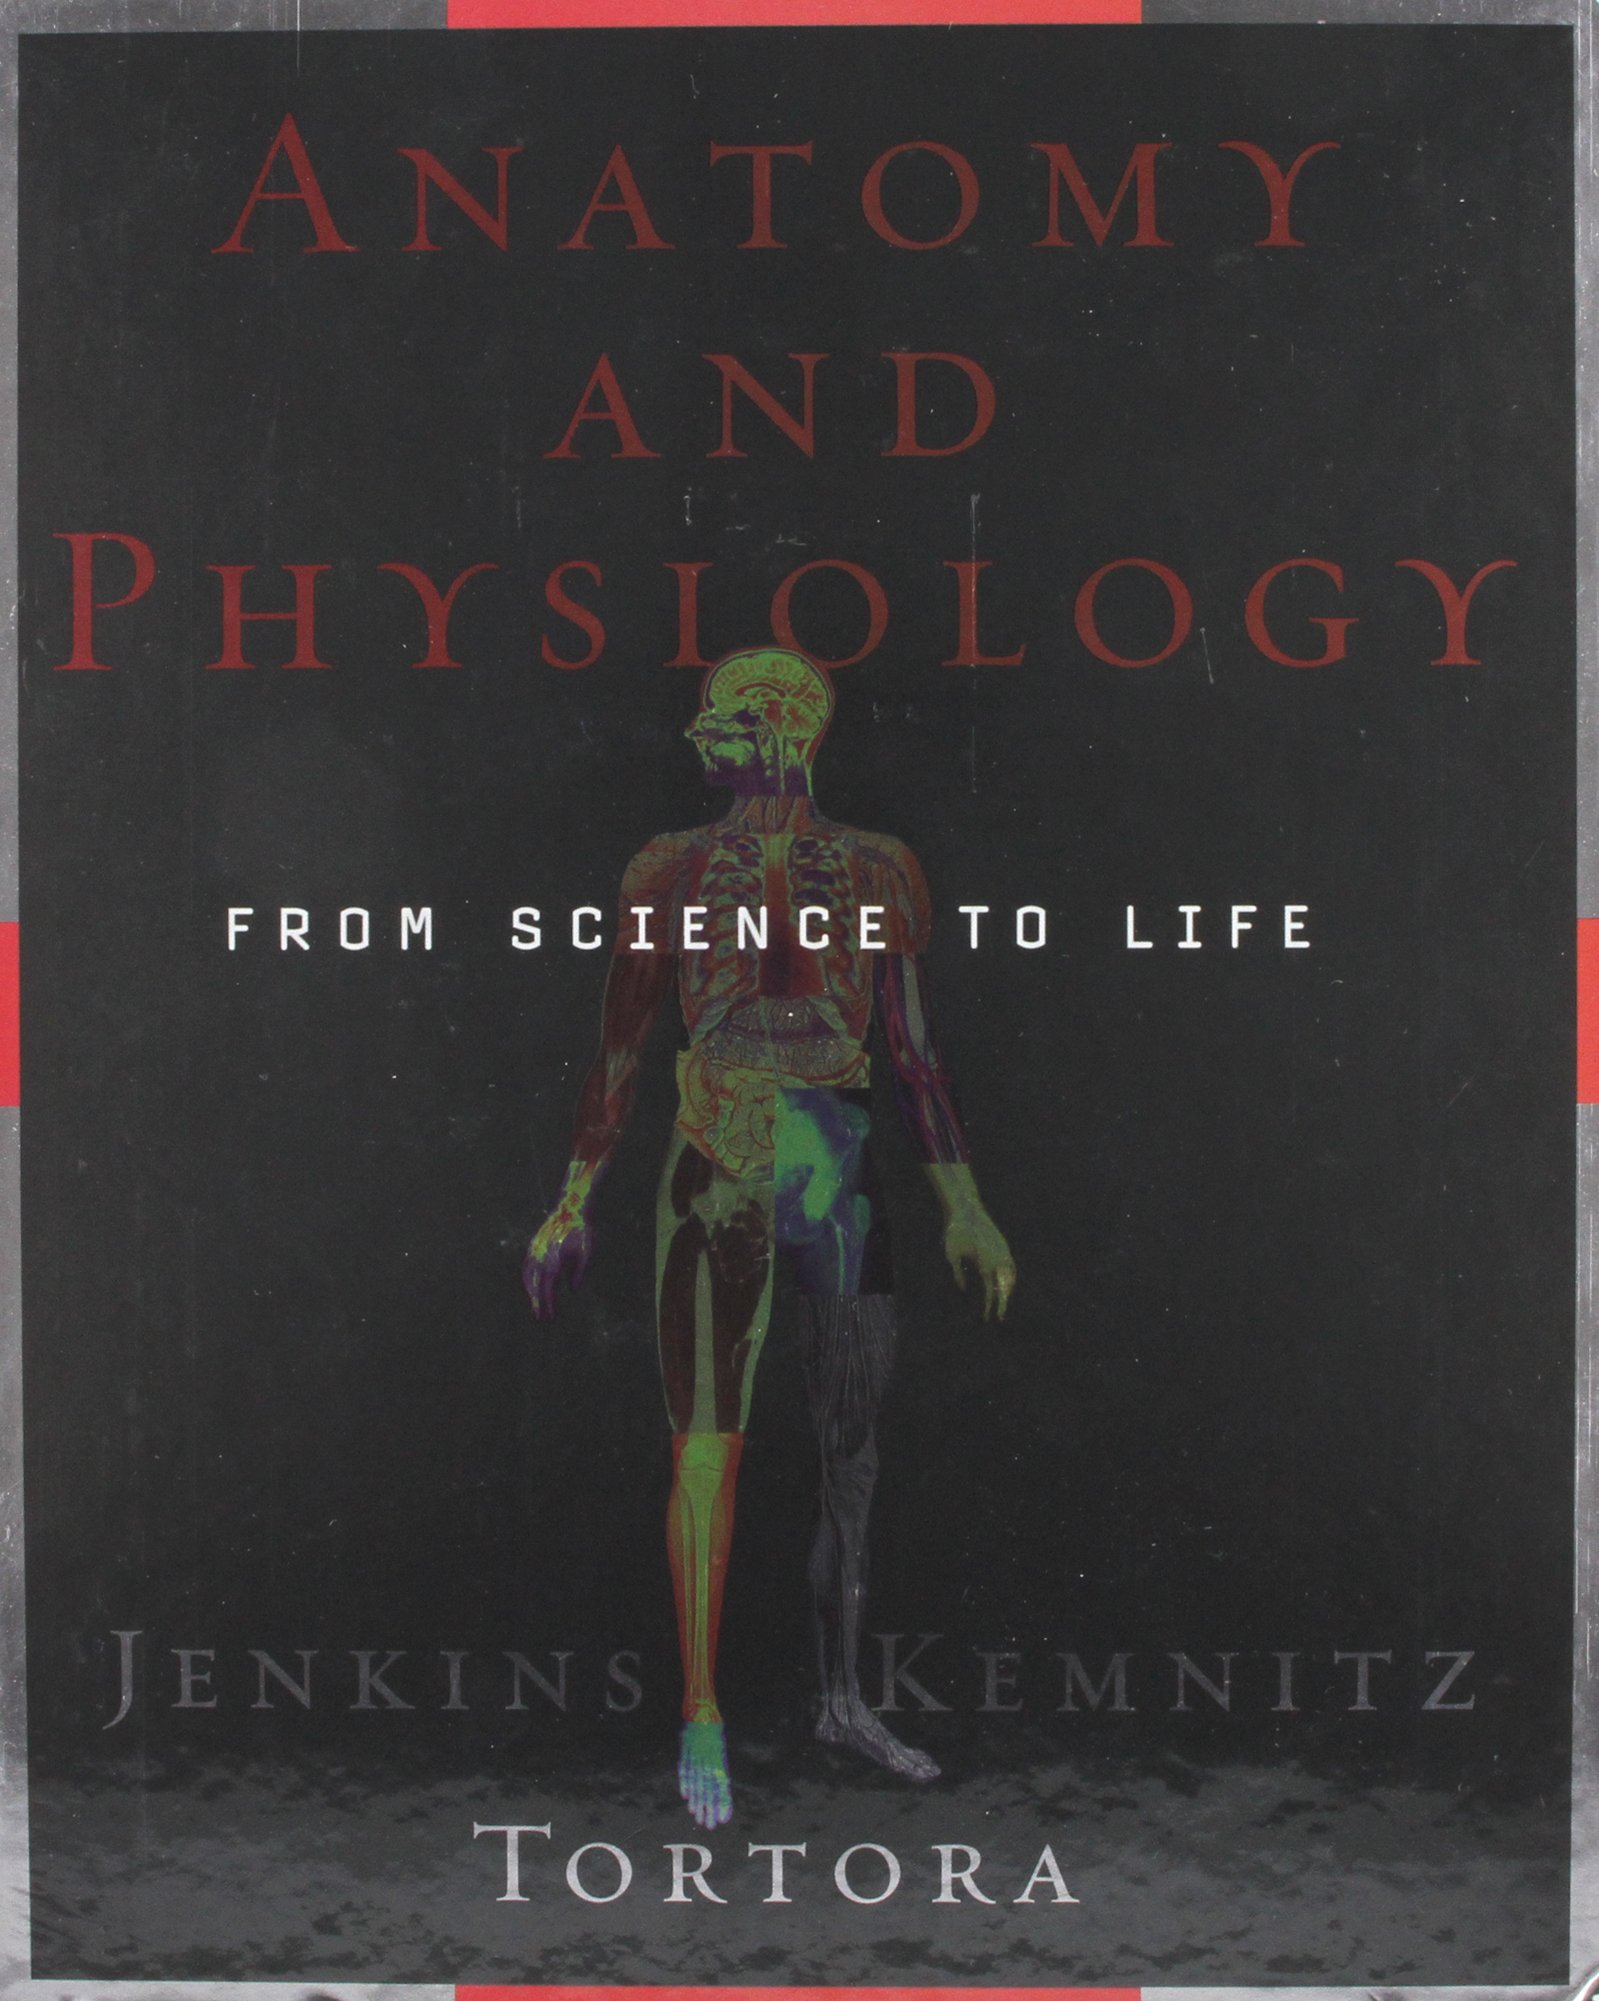 Anatomy and Physiology: From Science to Life: Amazon.co.uk: Jenkins ...